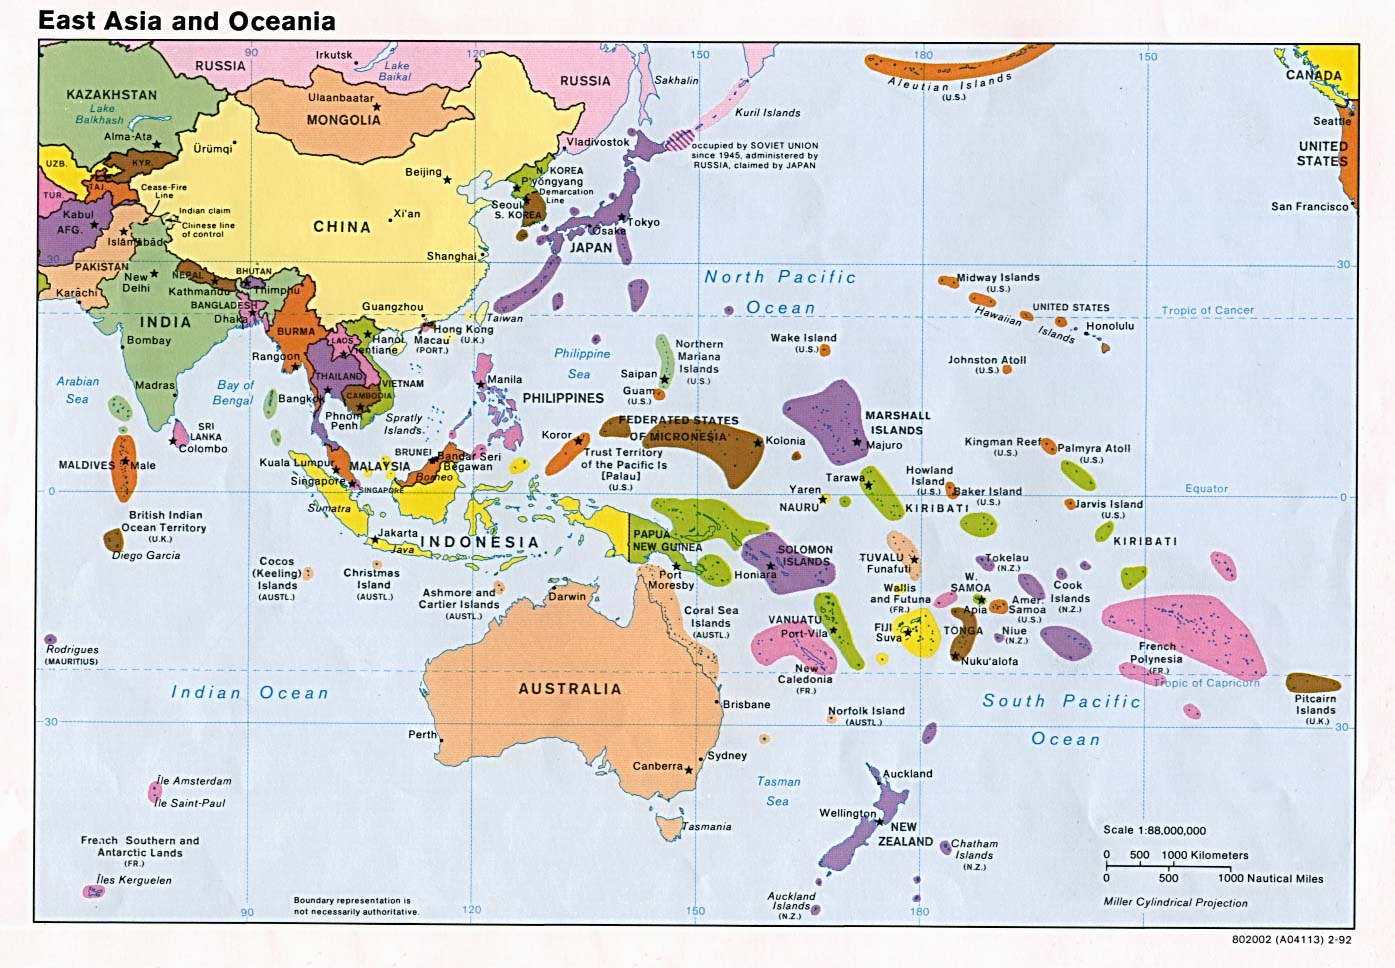 east asia and oceania political map with all capitals 1992